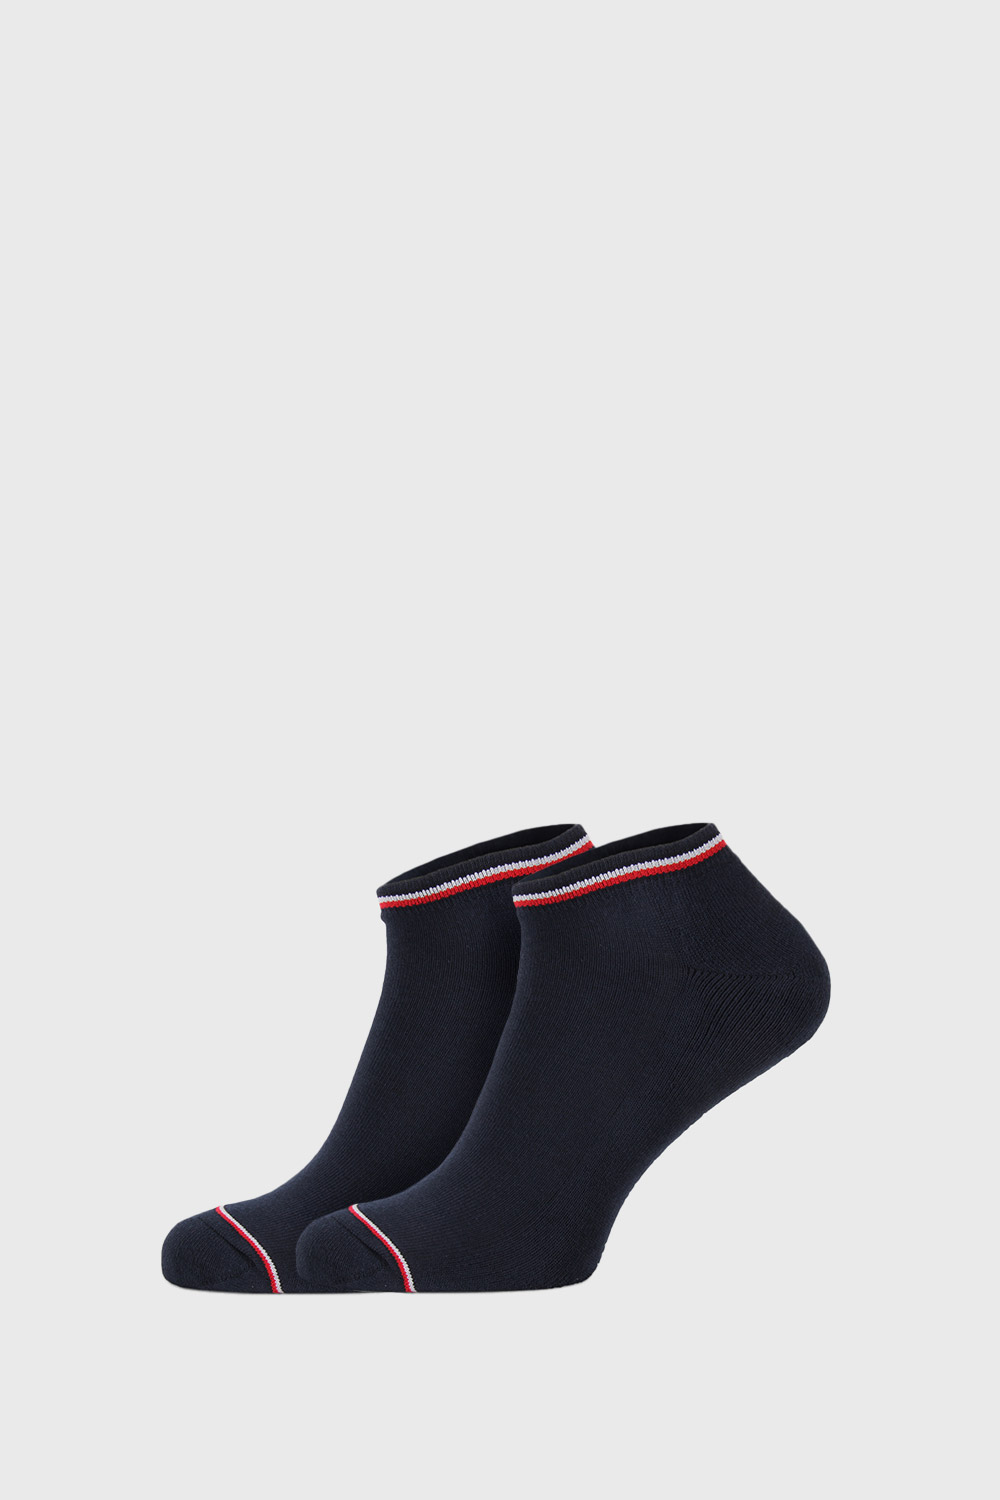 2 PACK șosete Tommy Hilfiger Iconic Sneaker, alb